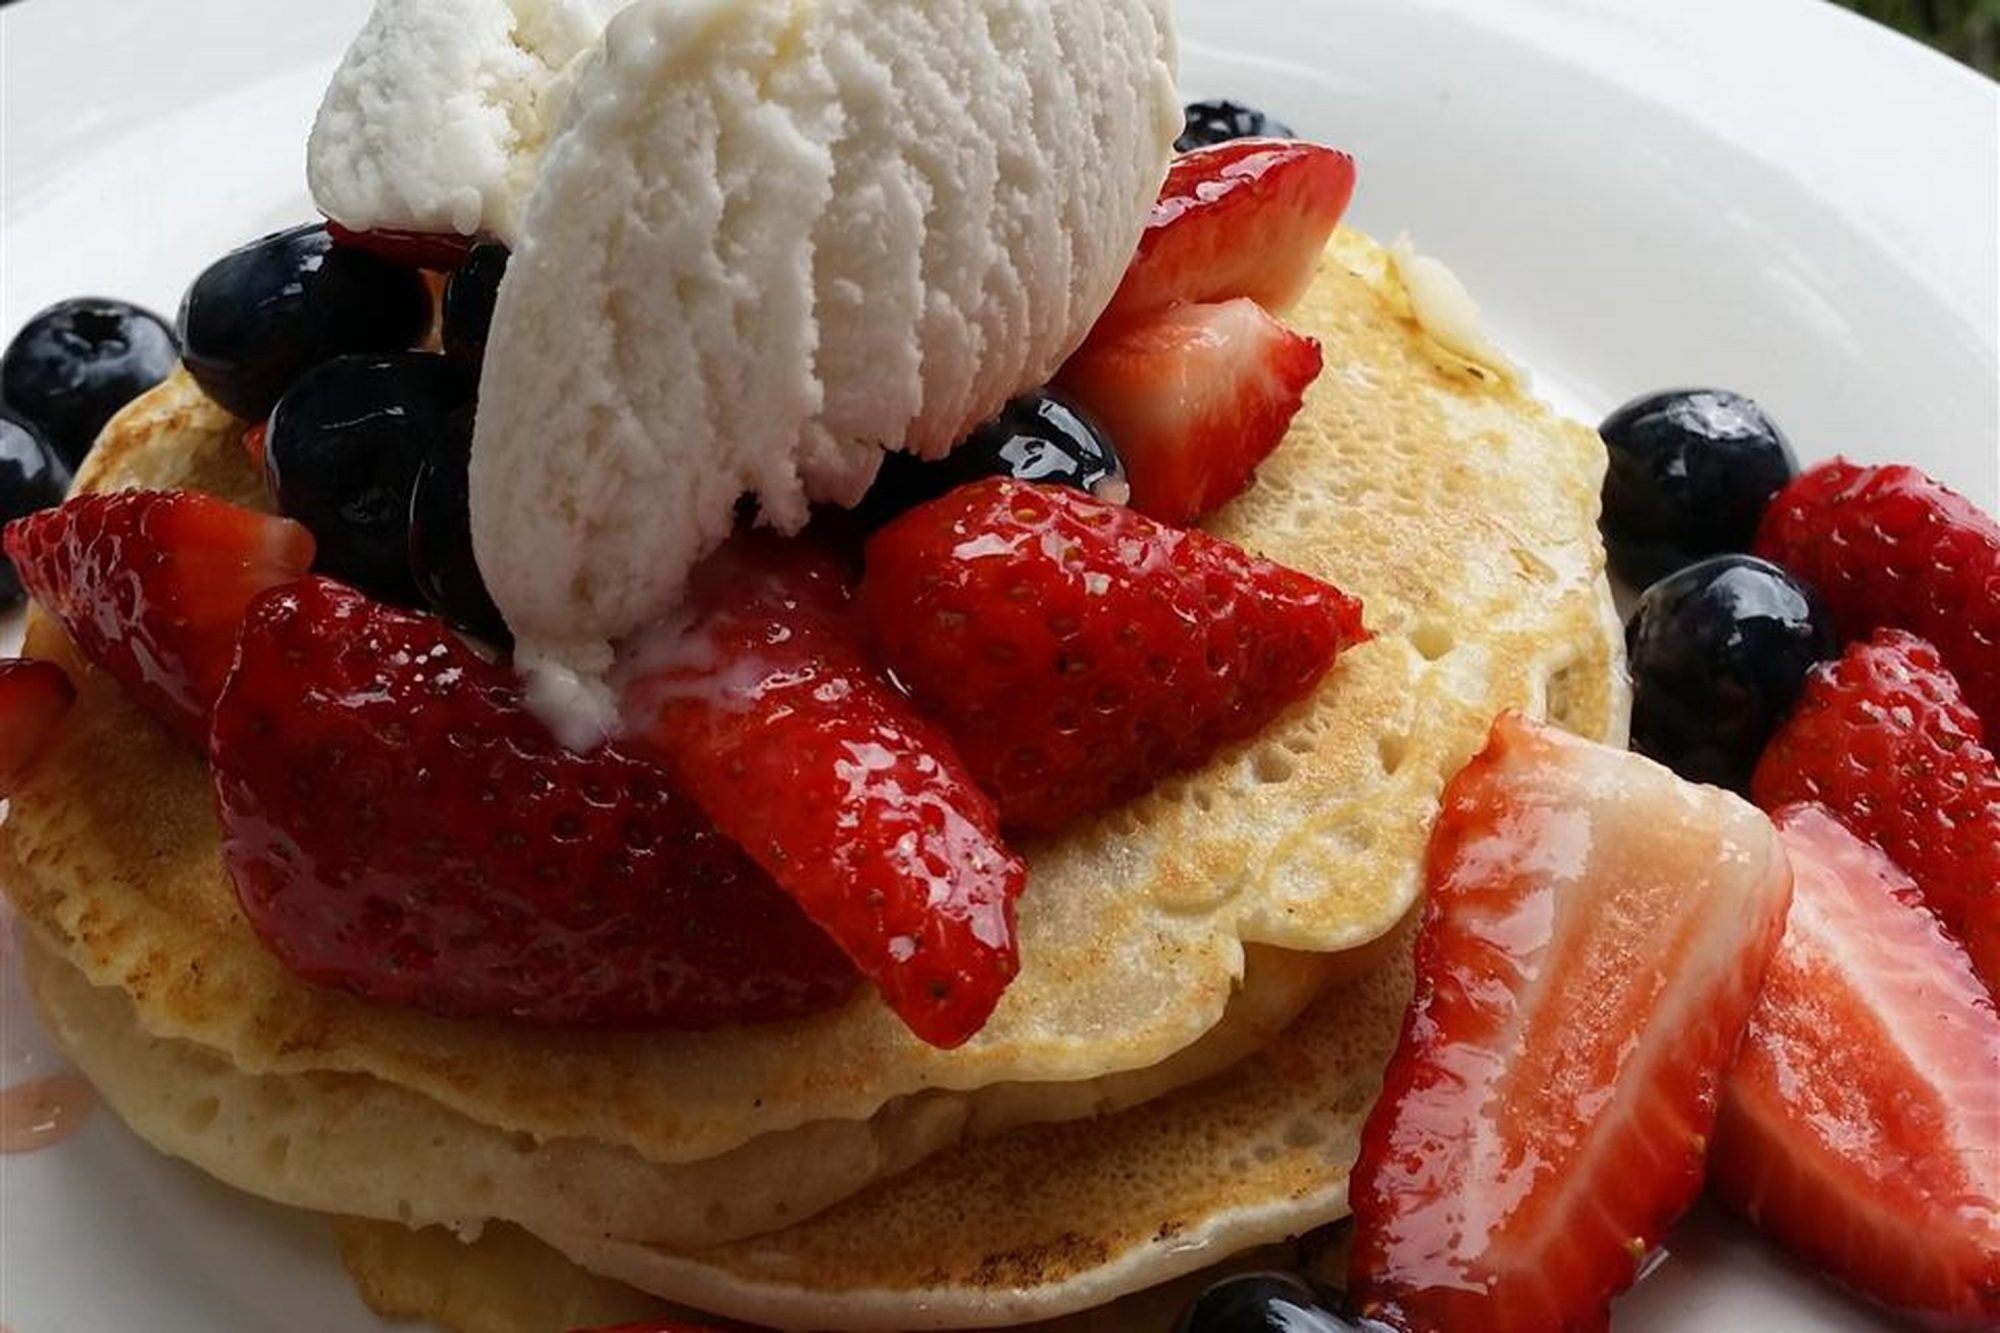 Vegan pancakes with strawberries, blueberries, and ice cream